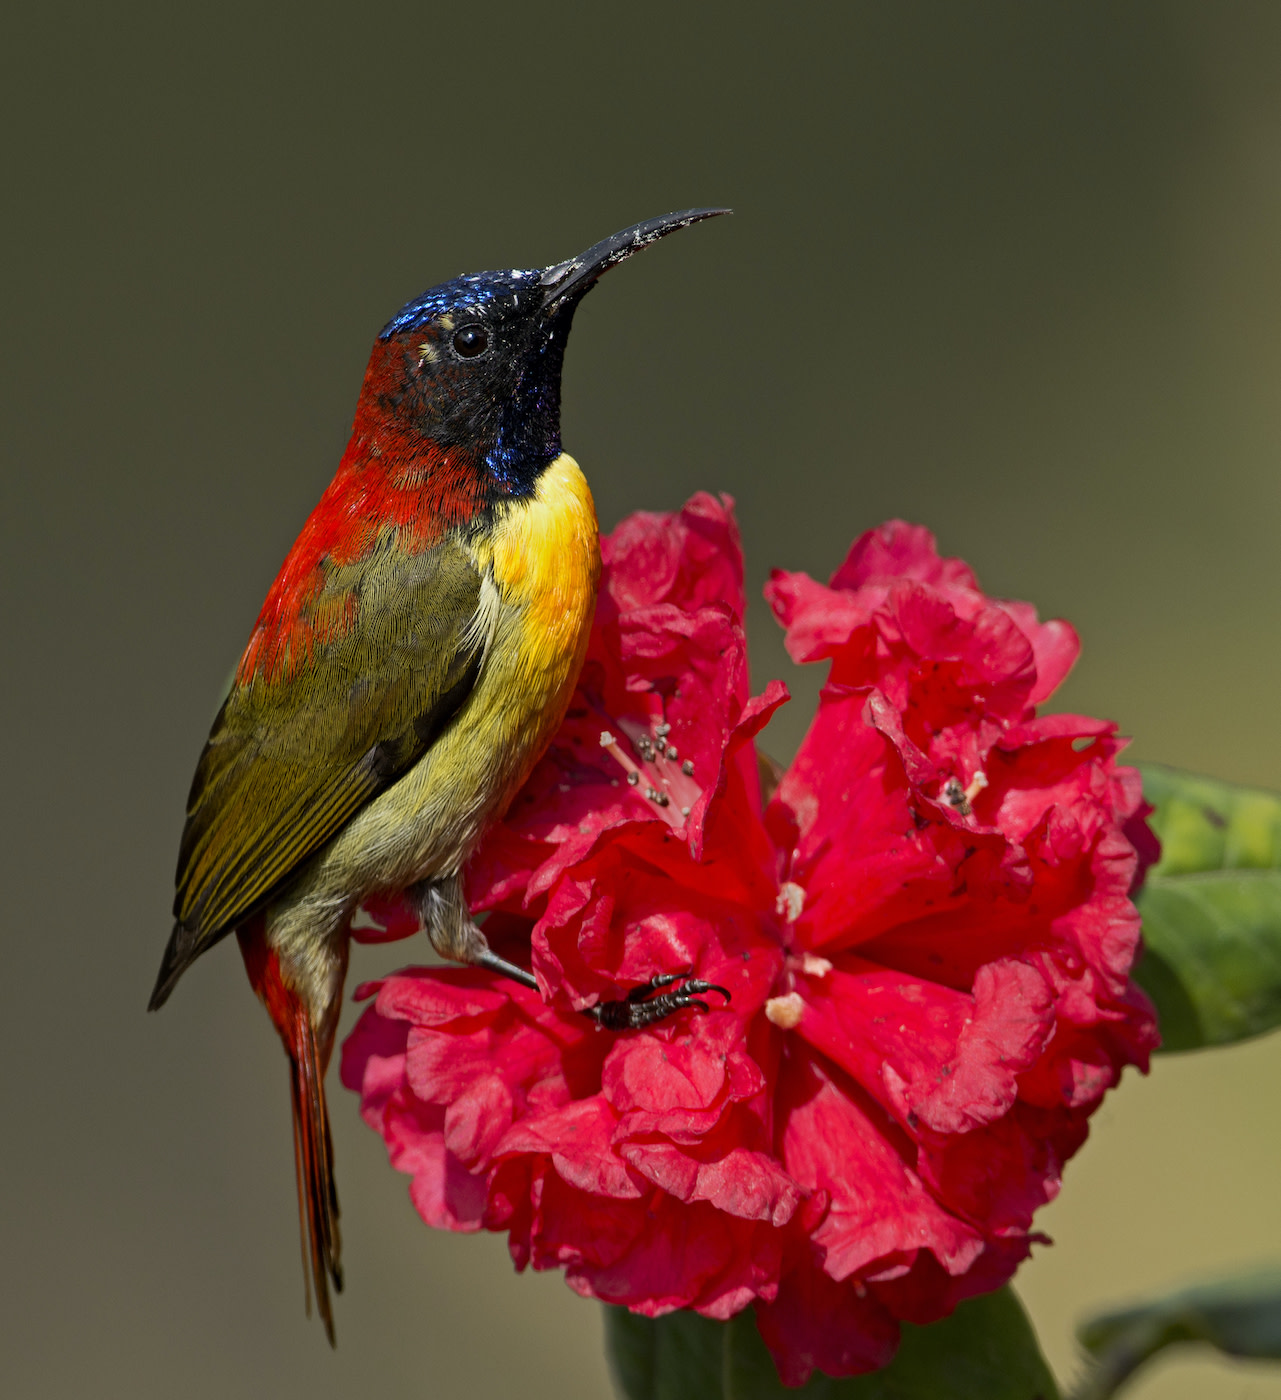 A fire-tailed sunbird feeding on Rhododendron arboreum flowers in Singalila National Park, in West Bengal. Photo: birajsarkar/Shutterstock